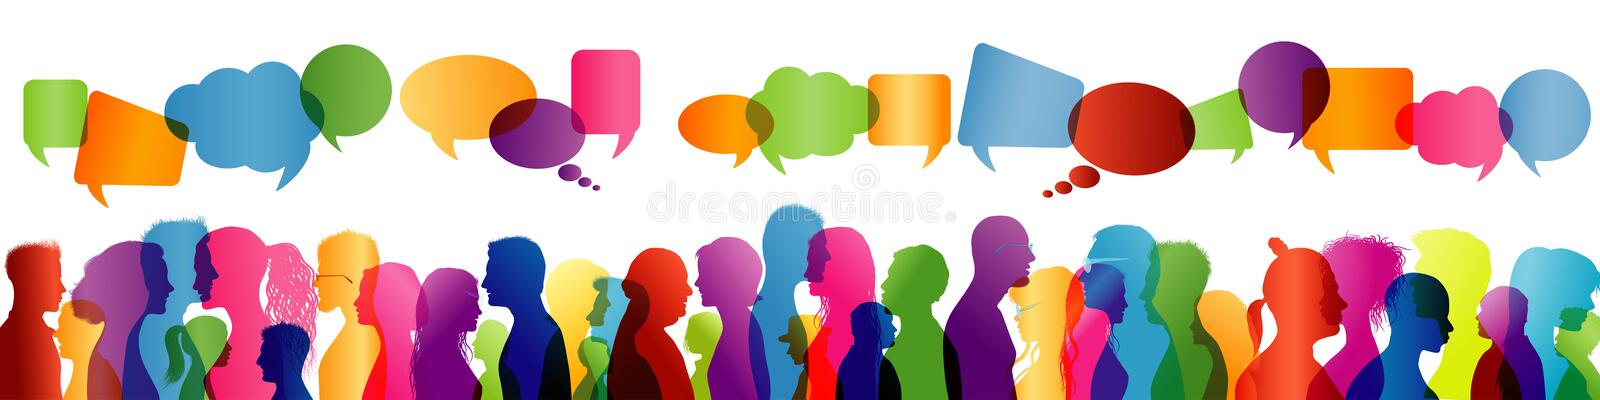 Communication between people. Group of people talking. Crowd talking. Colored profile silhouette. Speech bubble vector illustration